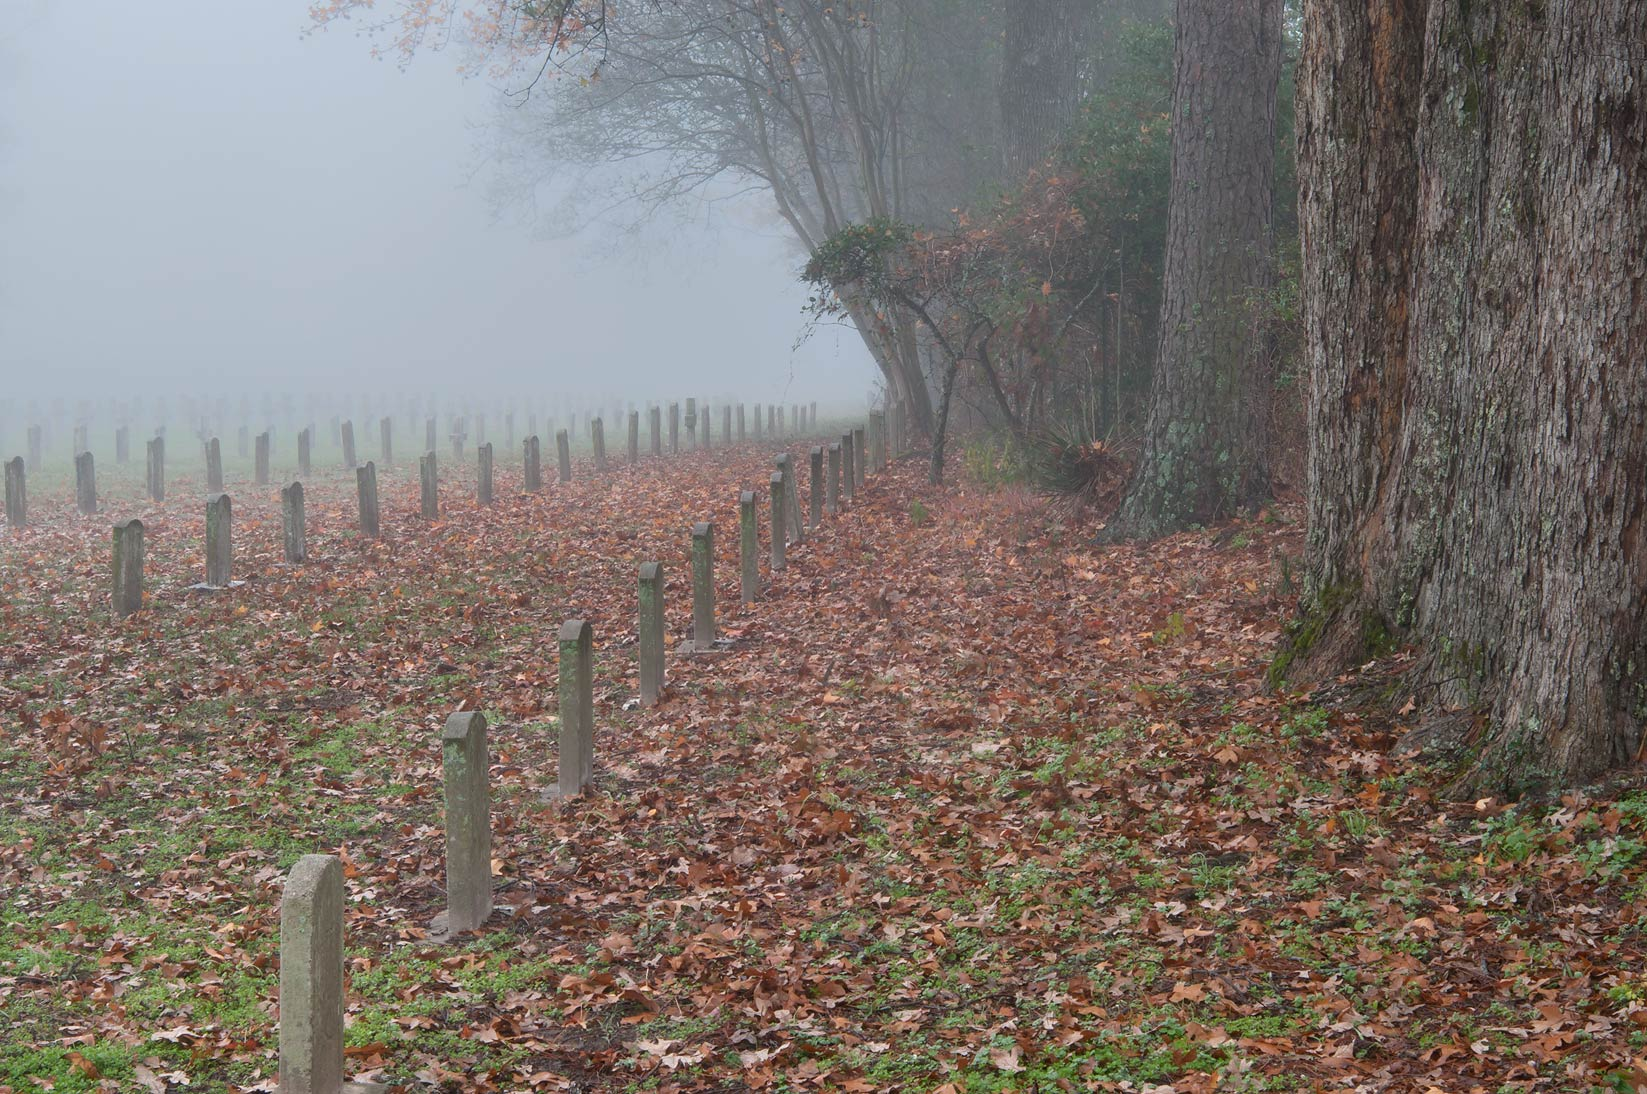 Back rows of TDCJ Captain Joe Byrd (Peckerwood Hill) Cemetery in fog. Huntsville, Texas